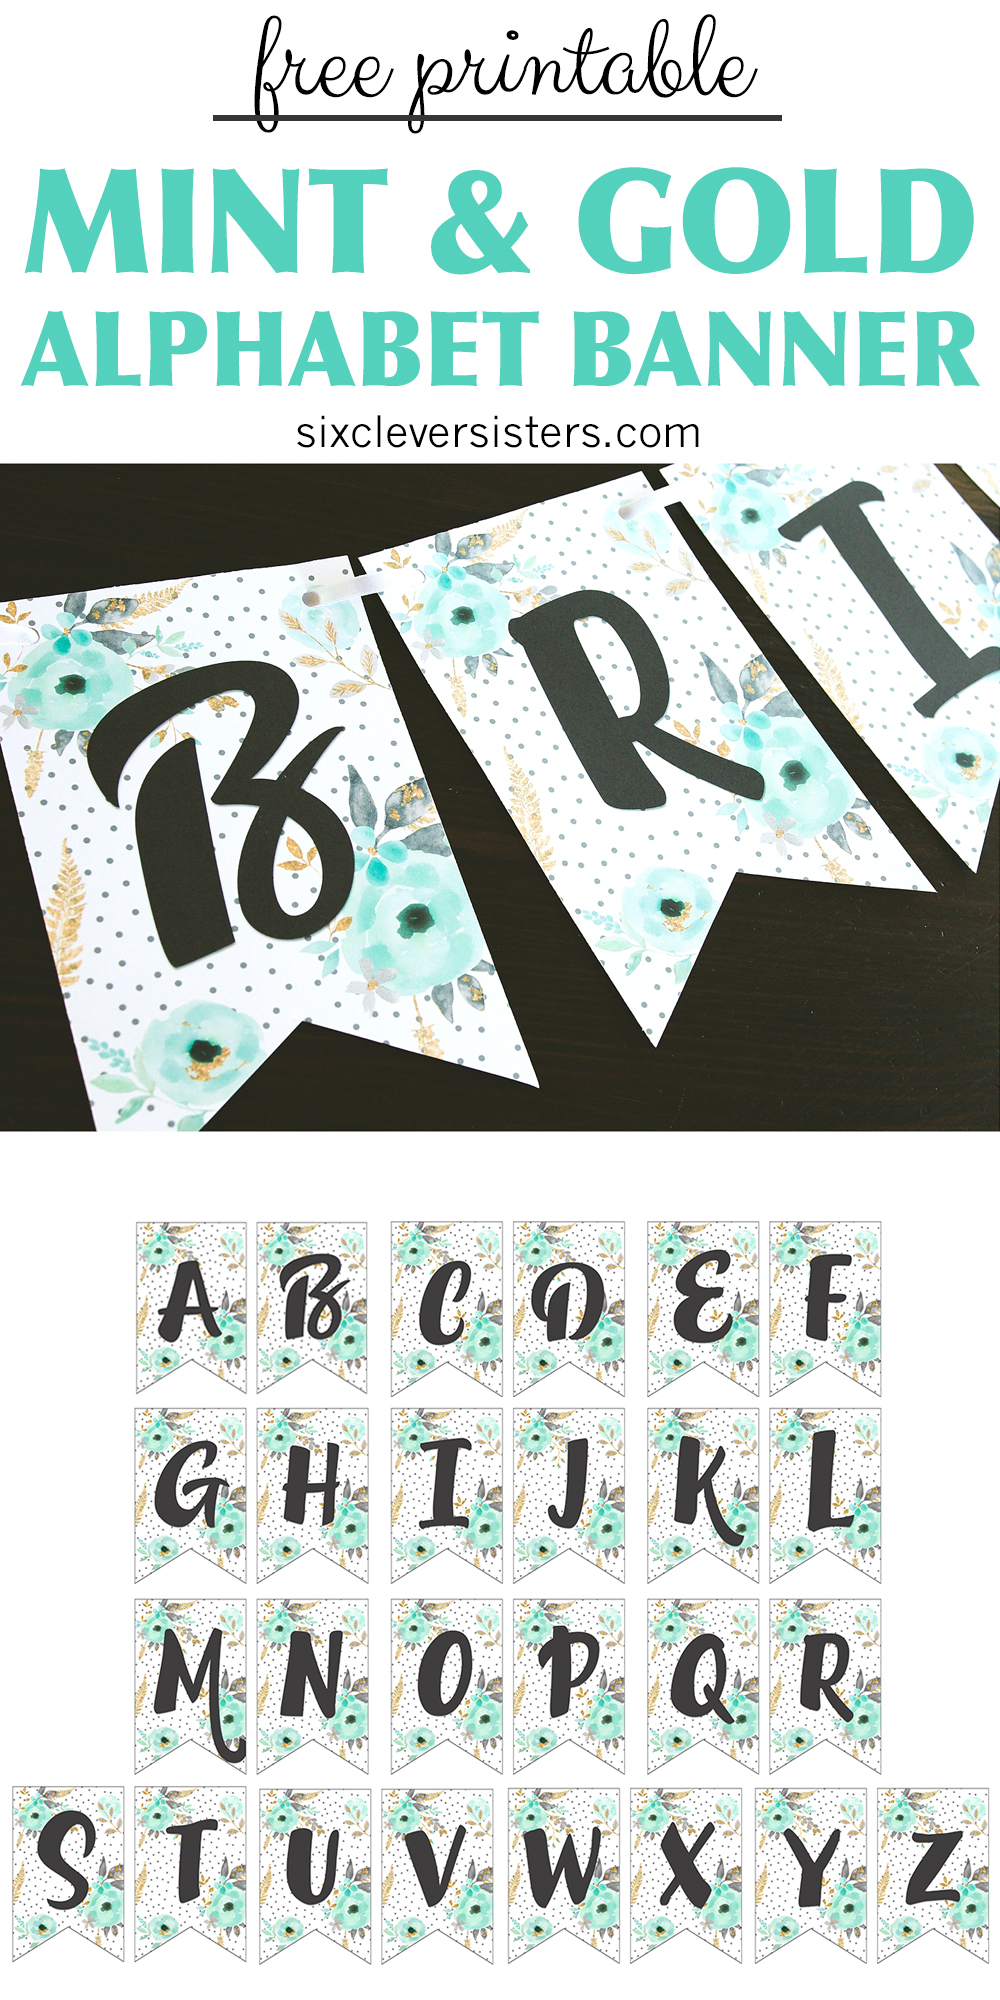 photograph relating to Banner Printable referred to as Cost-free Printable Alphabet Banner MINT GOLD - 6 Smart Sisters